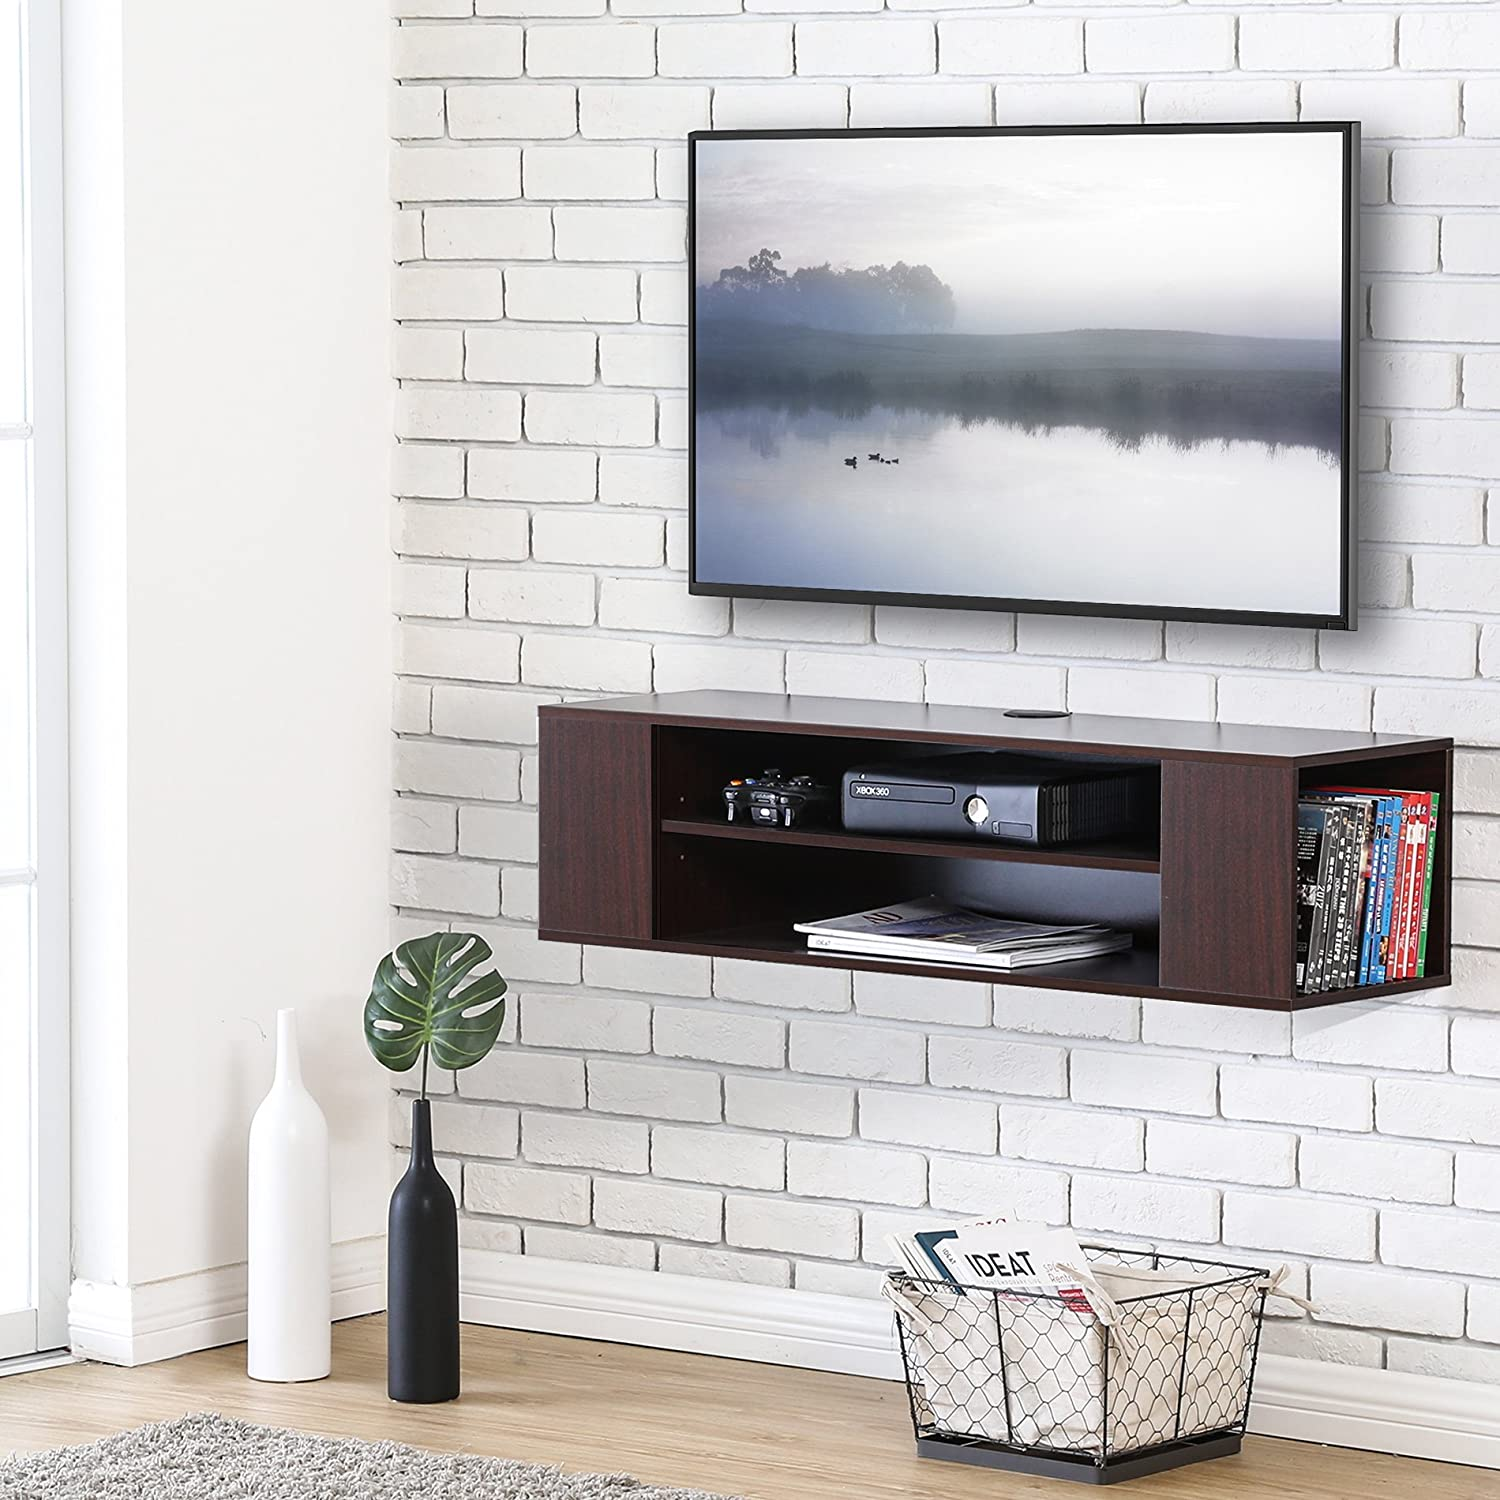 audio home component stylish video decor white of image cabinet by modern reisa